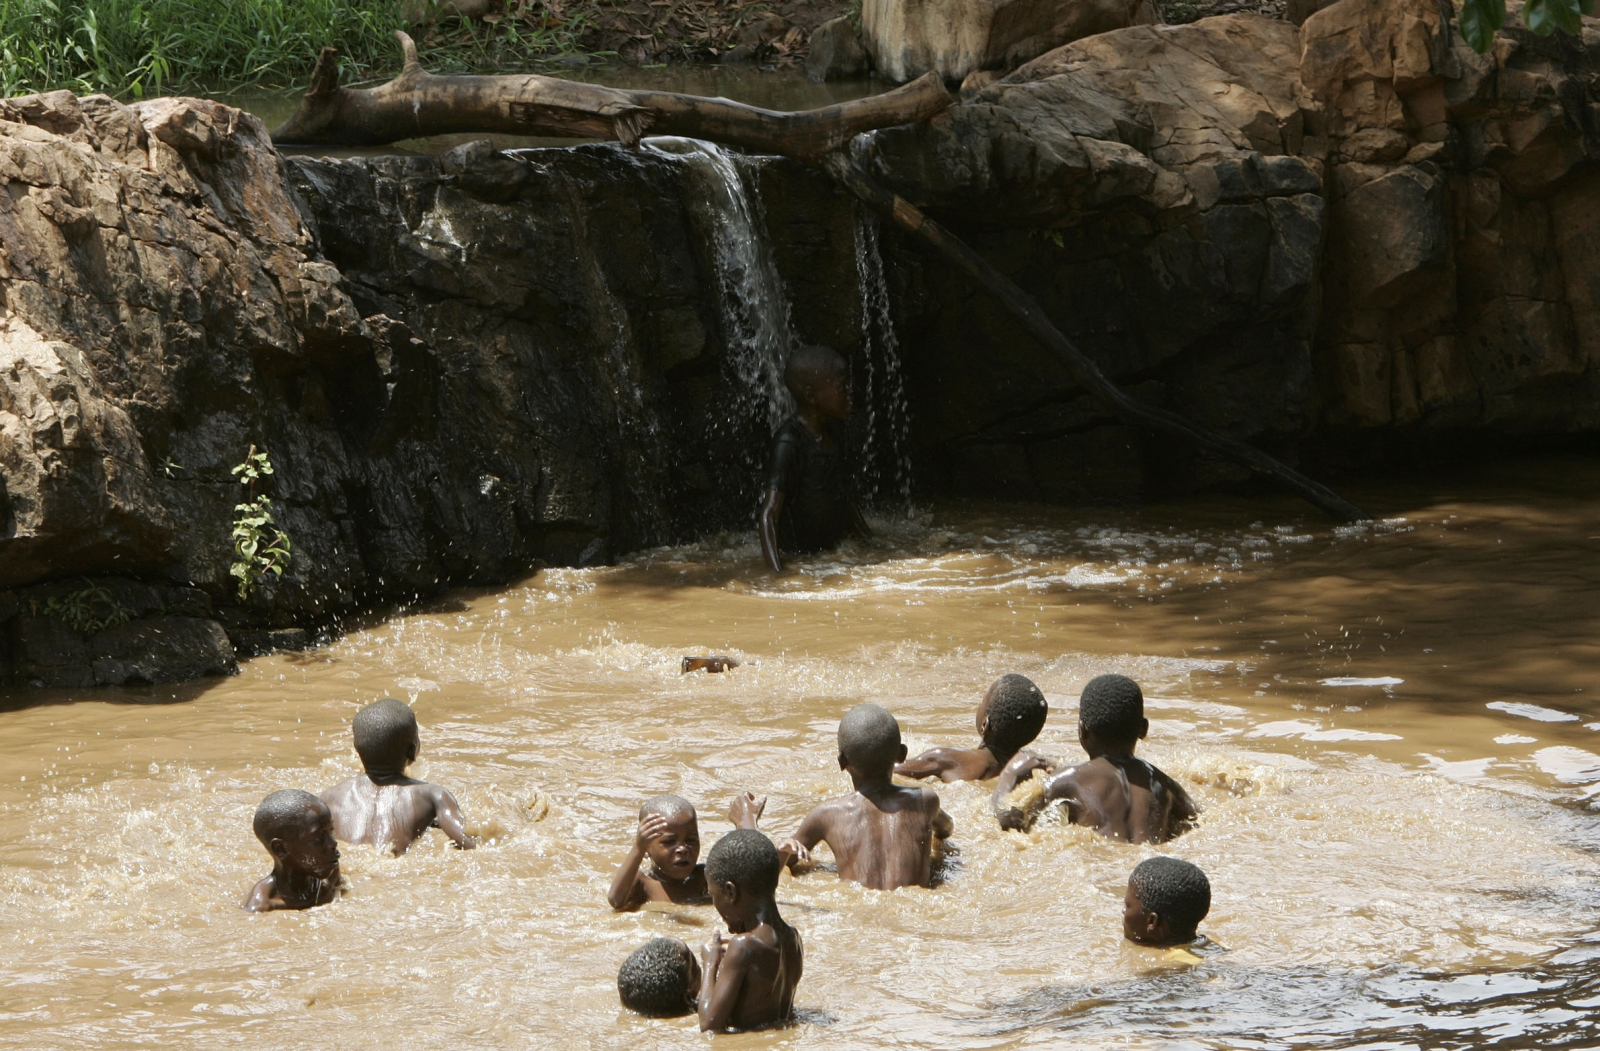 Children enjoy their school holidays by cooling off in muddy water in Tshaulu village in Limpopo province, South Africa, December 28, 2006. REUTERS/Siphiwe Sibeko (SOUTH AFRICA)